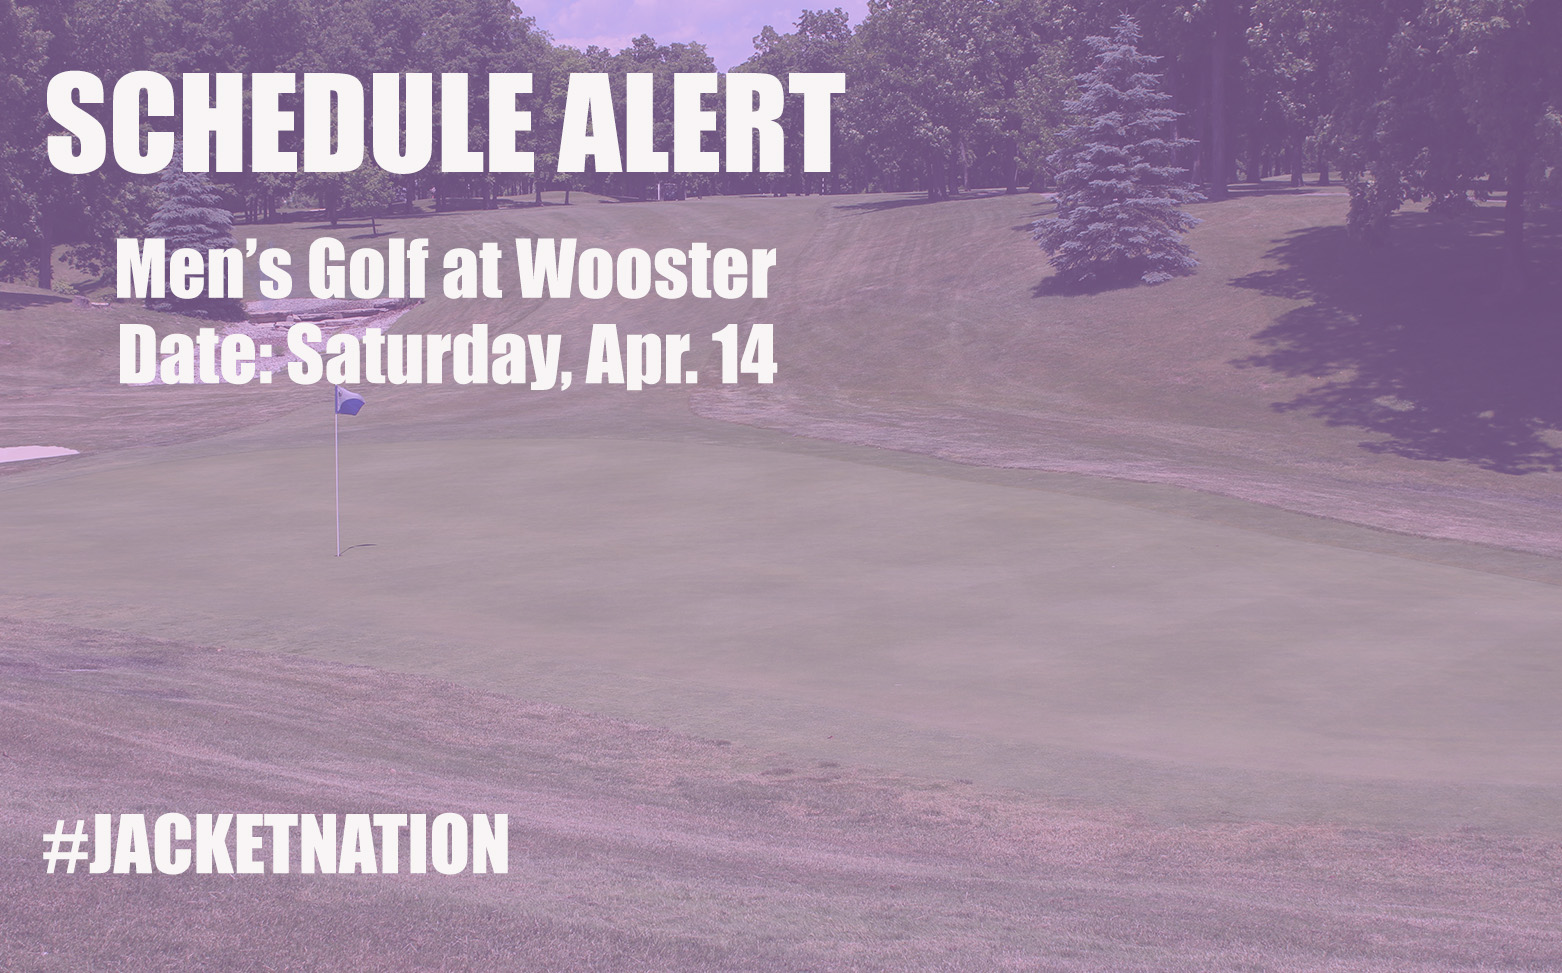 Inclement Weather Forces Change to Men's Golf Schedule